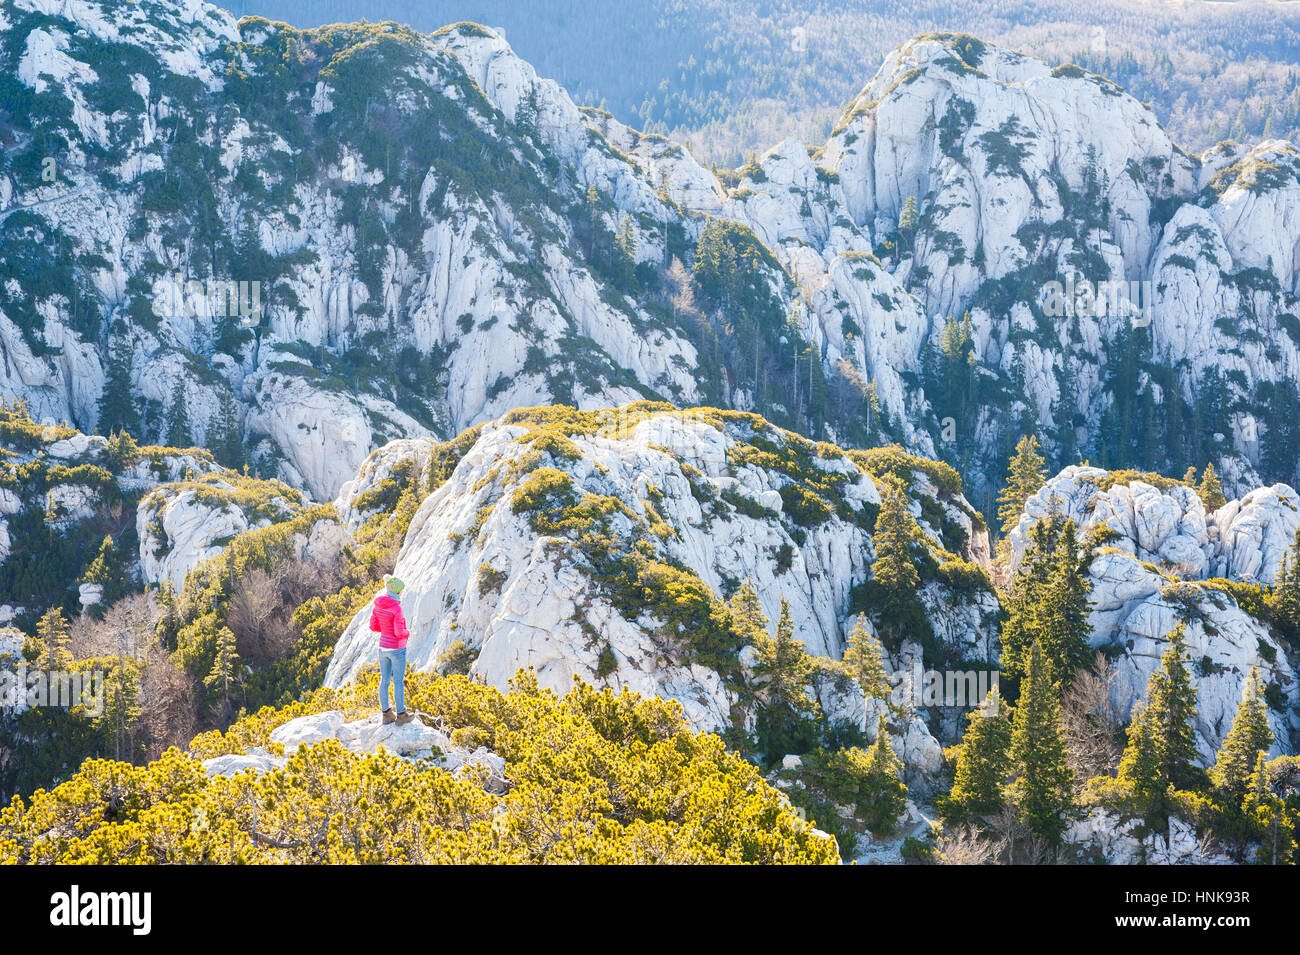 Hiking on Velebit mountain, Croatia. Northern Velebit National Park. Stock Photo